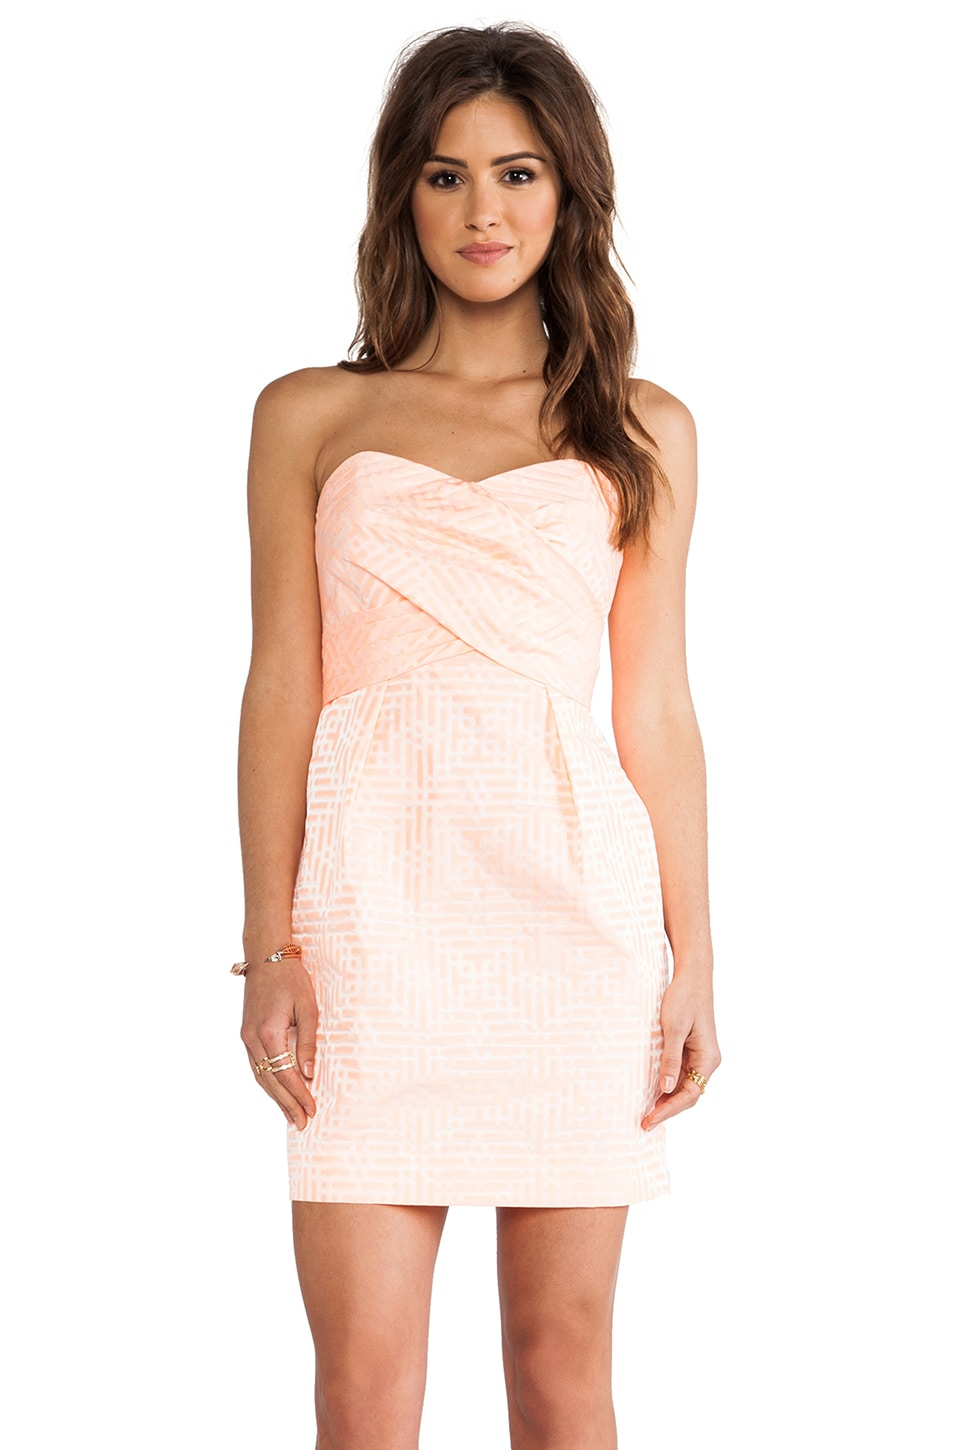 Shoshanna Kira Dress in Neon Guava